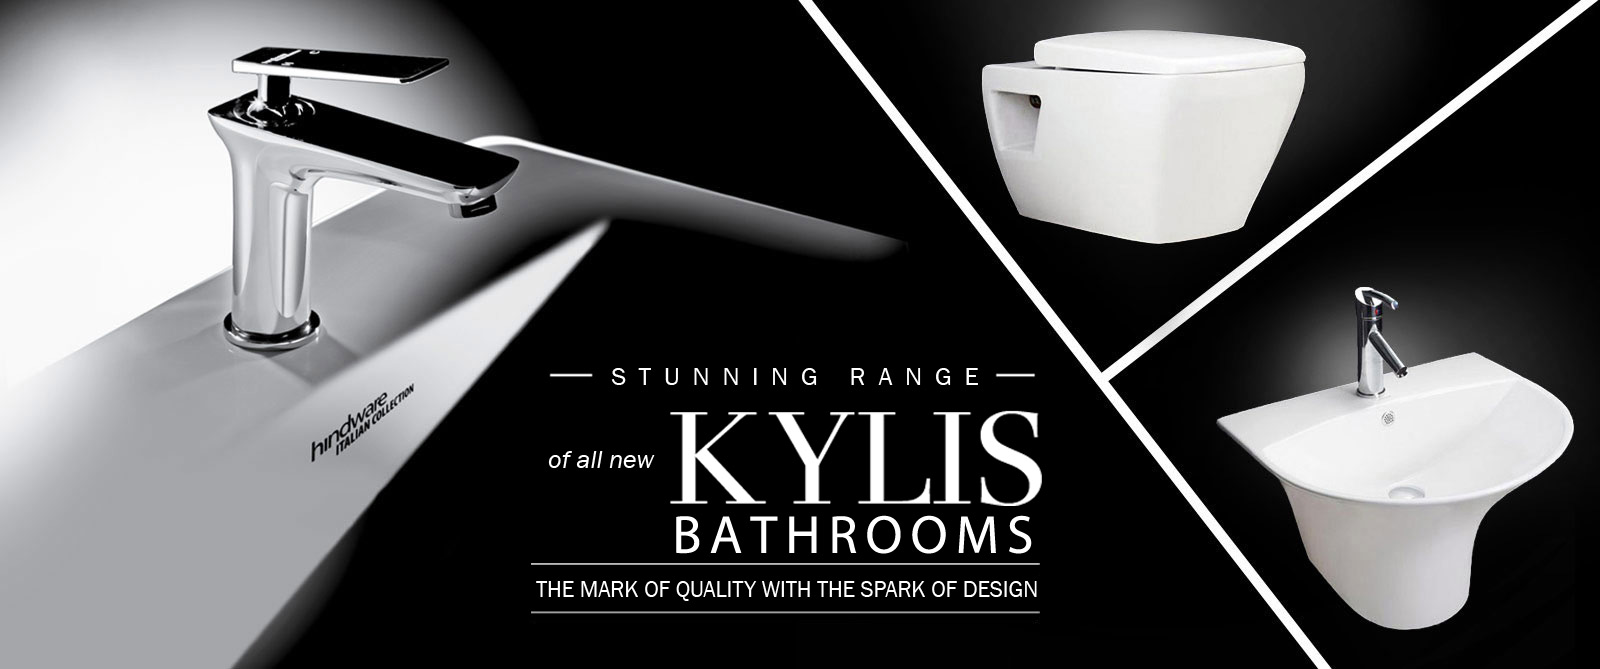 Make a Style Statement With KYLIS